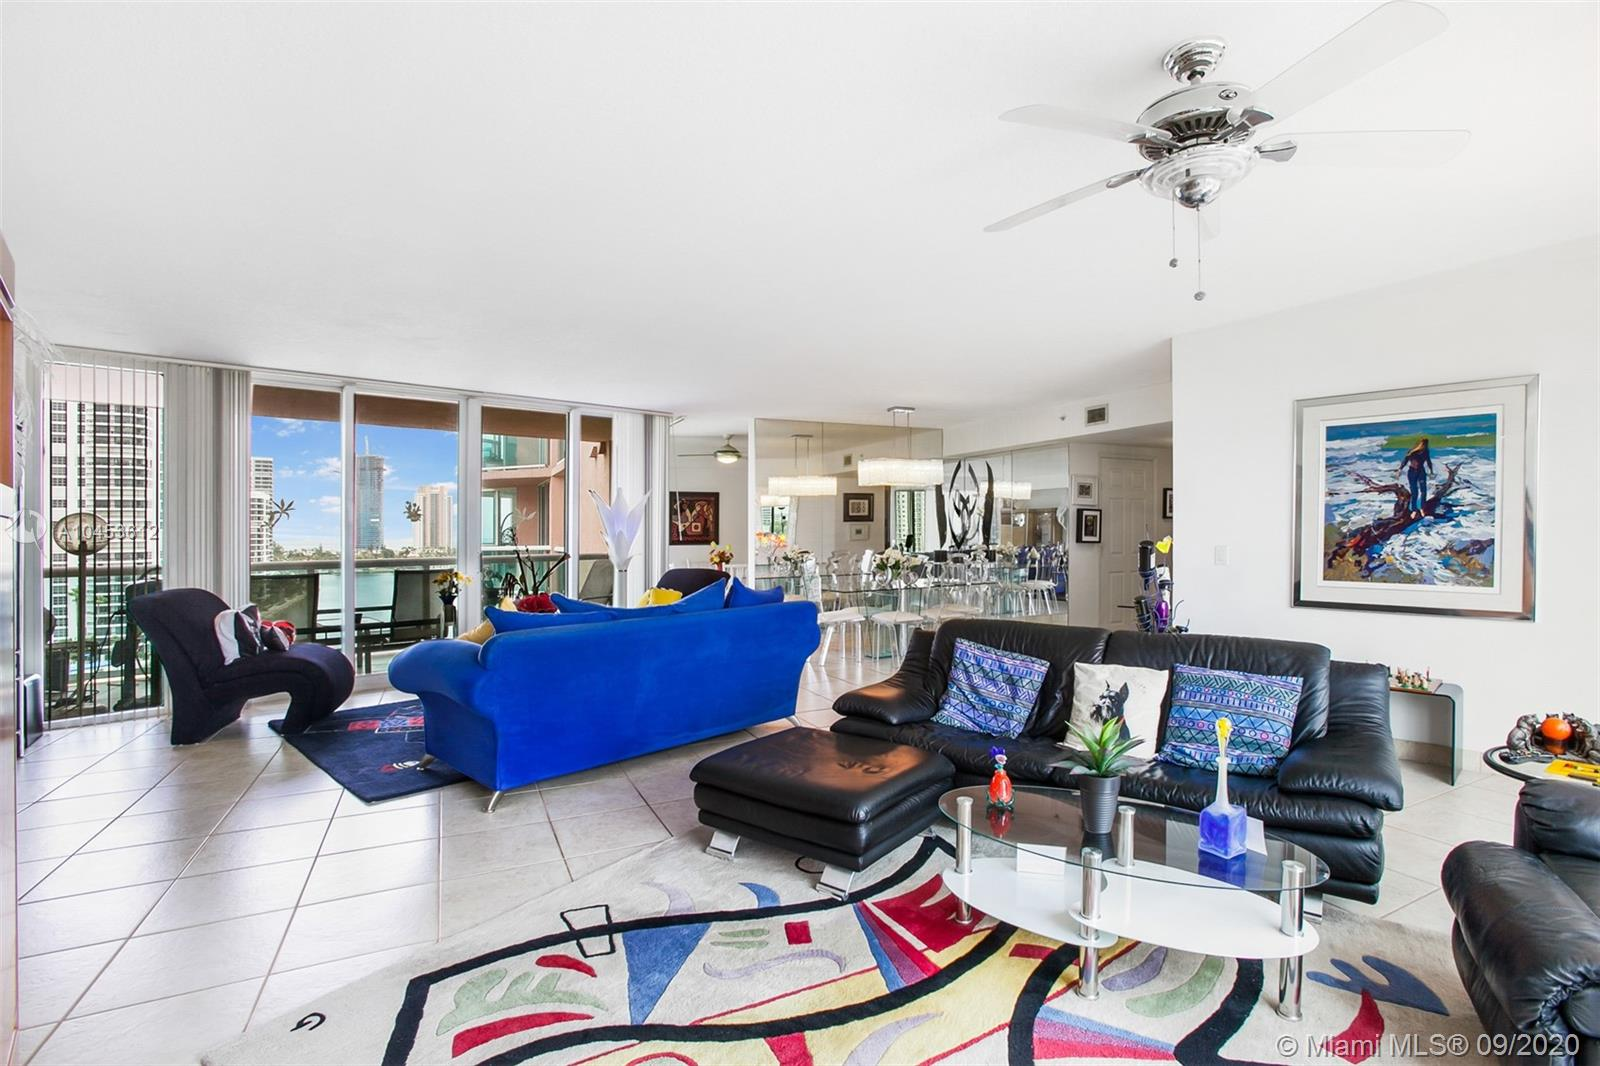 WOW! AN 1,870 SQFT MASTERPIECE! ENTER FROM SEMI PRIVATE ELEVATOR FOYER & IMMEDIATELY AND THRU OUT SEE THE BEST VIEWS IN TOWN, 360 DEGREE OF OCEAN, BAY, CITY, GOLF COURSE, MARINA. FABULOUS FLOOR PLAN WITH FLOOR TO CEILING GLASS ON TWO SIDES - SUNRISE + SUNSET. SPLIT PLAN OFFERS PRIVACY. 2 EN SUITES + POWDER ROOM, SPACIOUS - HUGE GREAT ROOM EASILY CONVERTS TO THIRD BEDROOM. IMPACT WINDOWS. FALL IN LOVE WITH THIS ONE! IN THE HEART OF AVENTURA, NEXT TO FOUNDERS PARK FOR THE KIDS, WALK TO AVENTURA MALL, GROCERIES, RESTAURANTS, SOFFER EXERCISE TRAIL AROUND RENOWNED TURNBERRY ISLE GOLF COURSE. GREAT RESIDENCE IN GREAT LOCATION. MAKE AN OFFER.